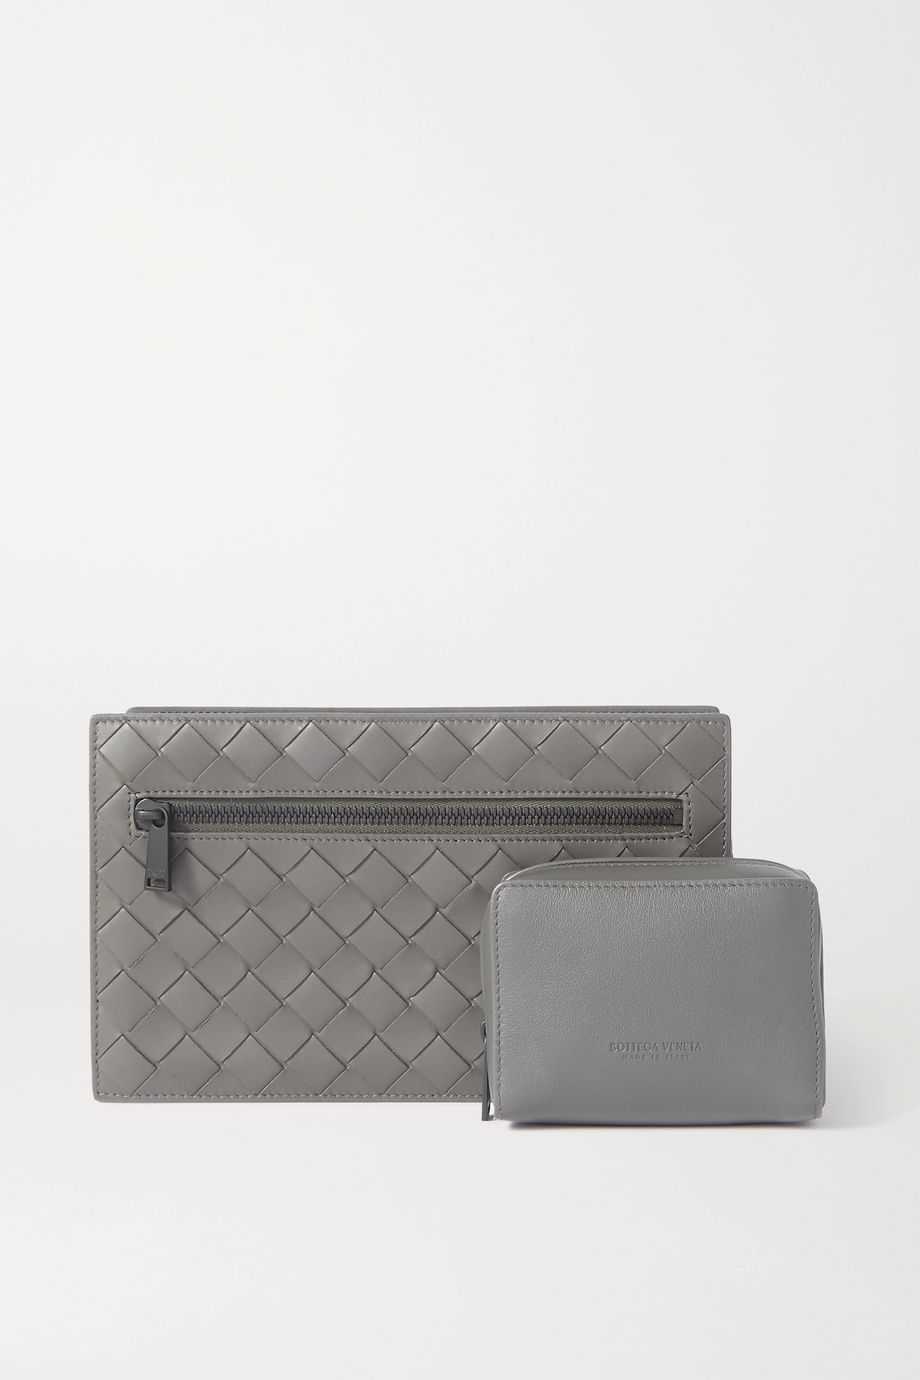 Bottega Veneta Intrecciato leather jewelry case